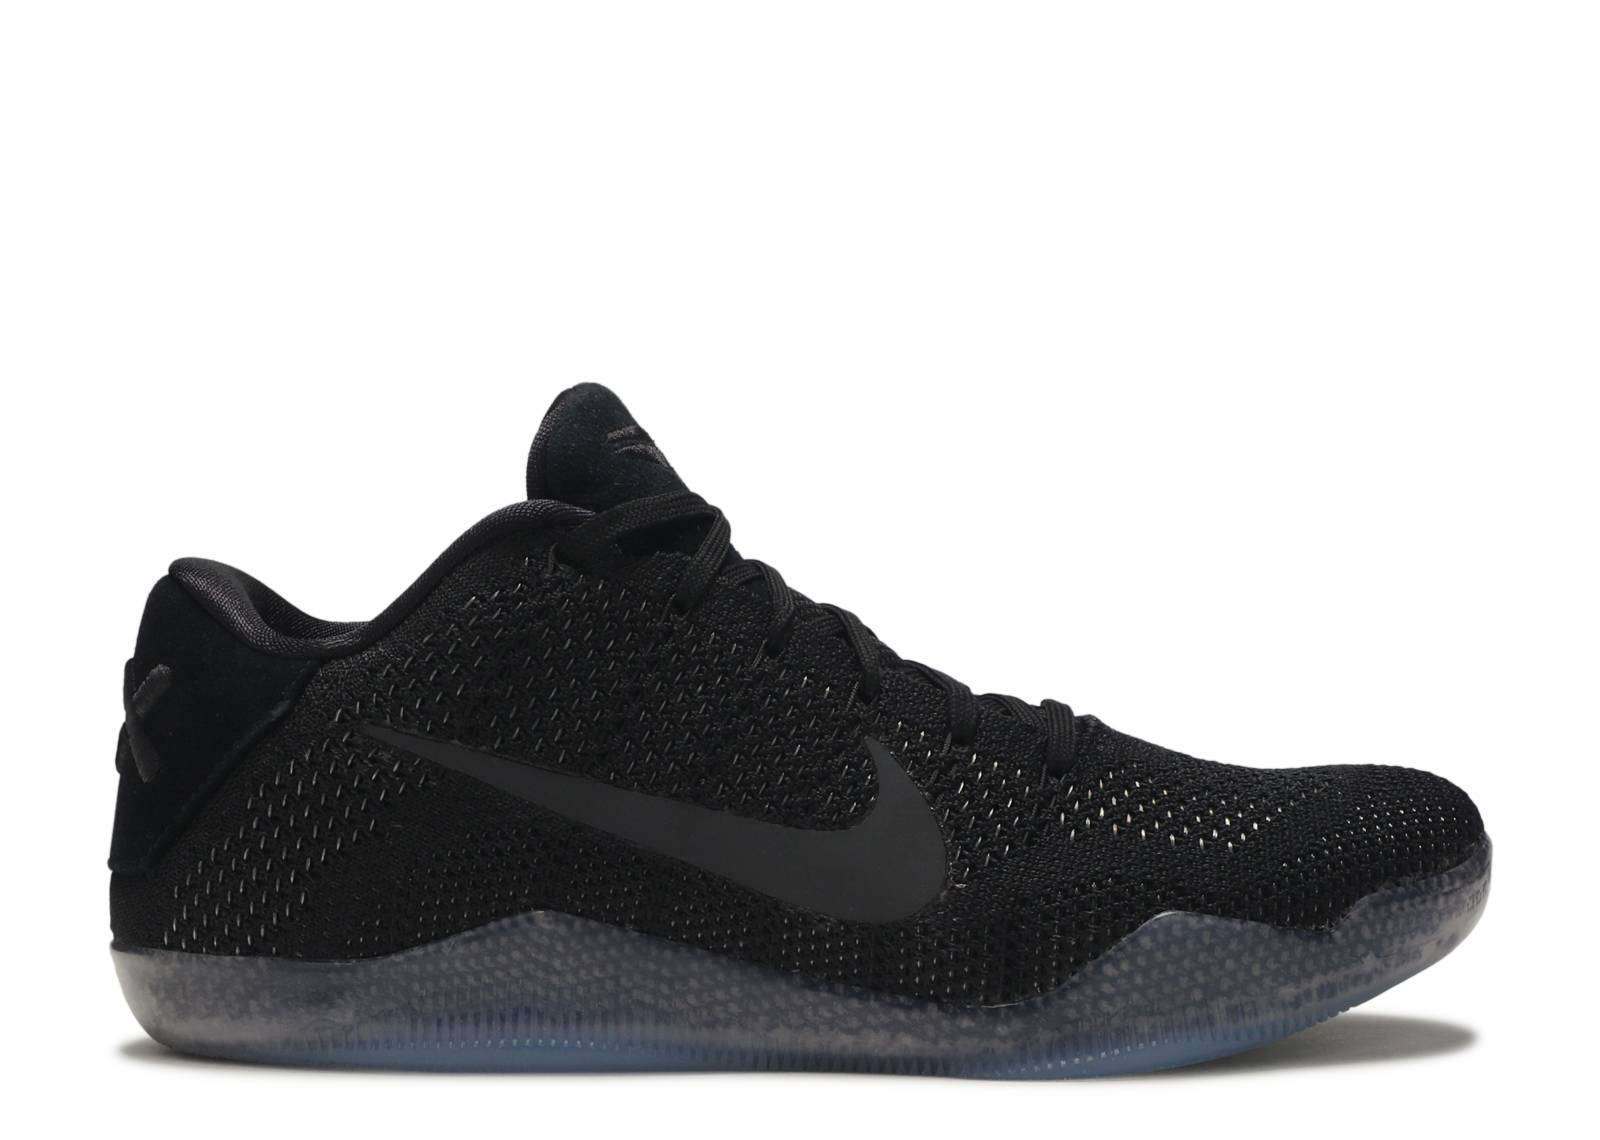 save off 6dfb0 0075f Kobe 11 Elite Low  Black Space